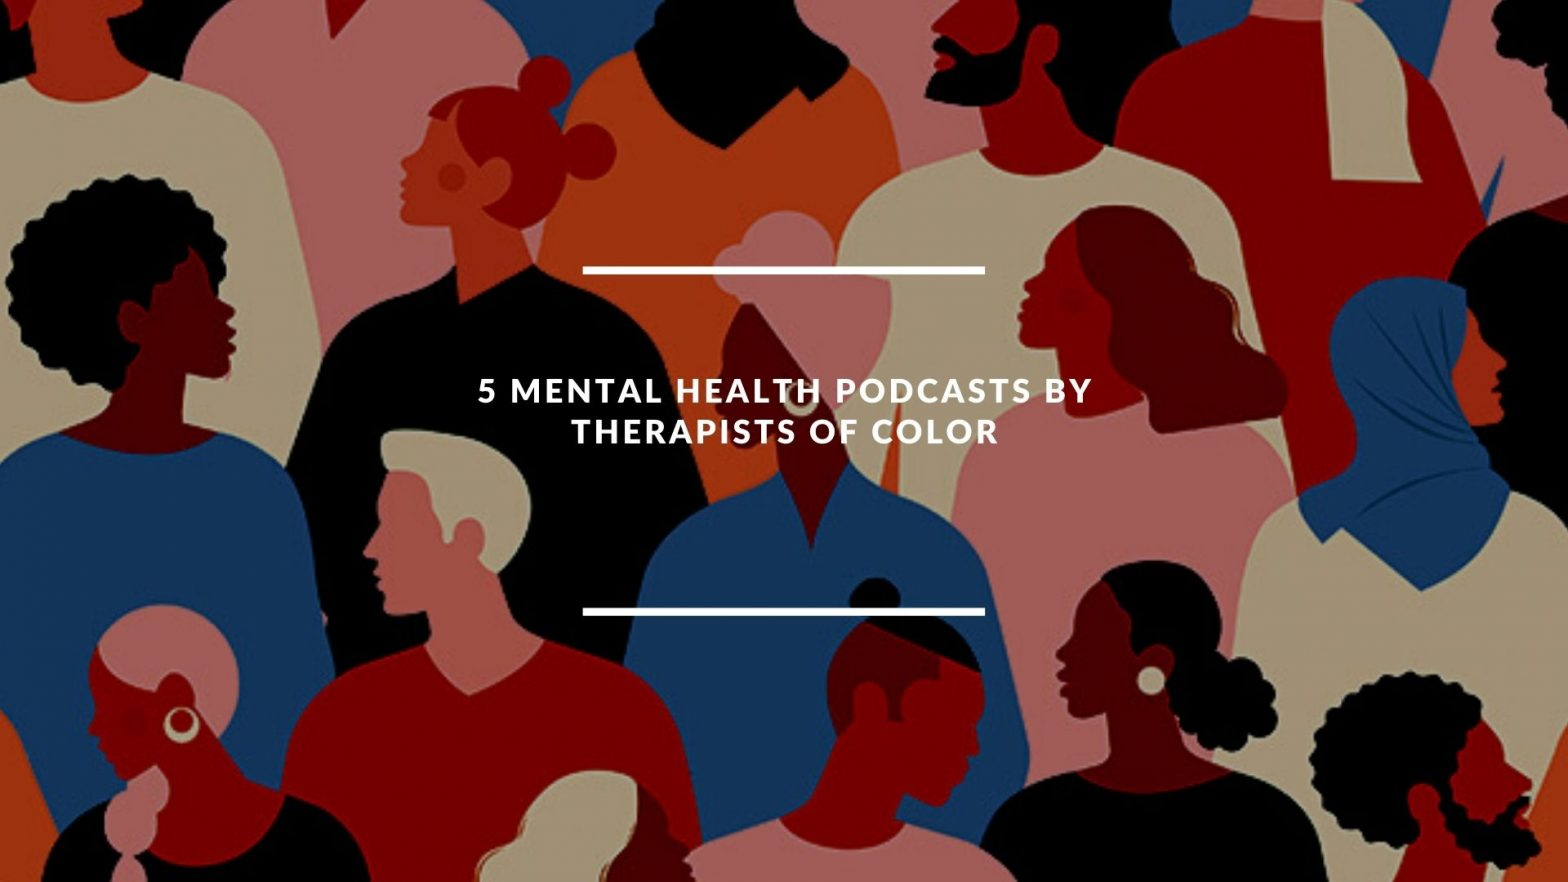 5 mental health podcasts by therapists of color